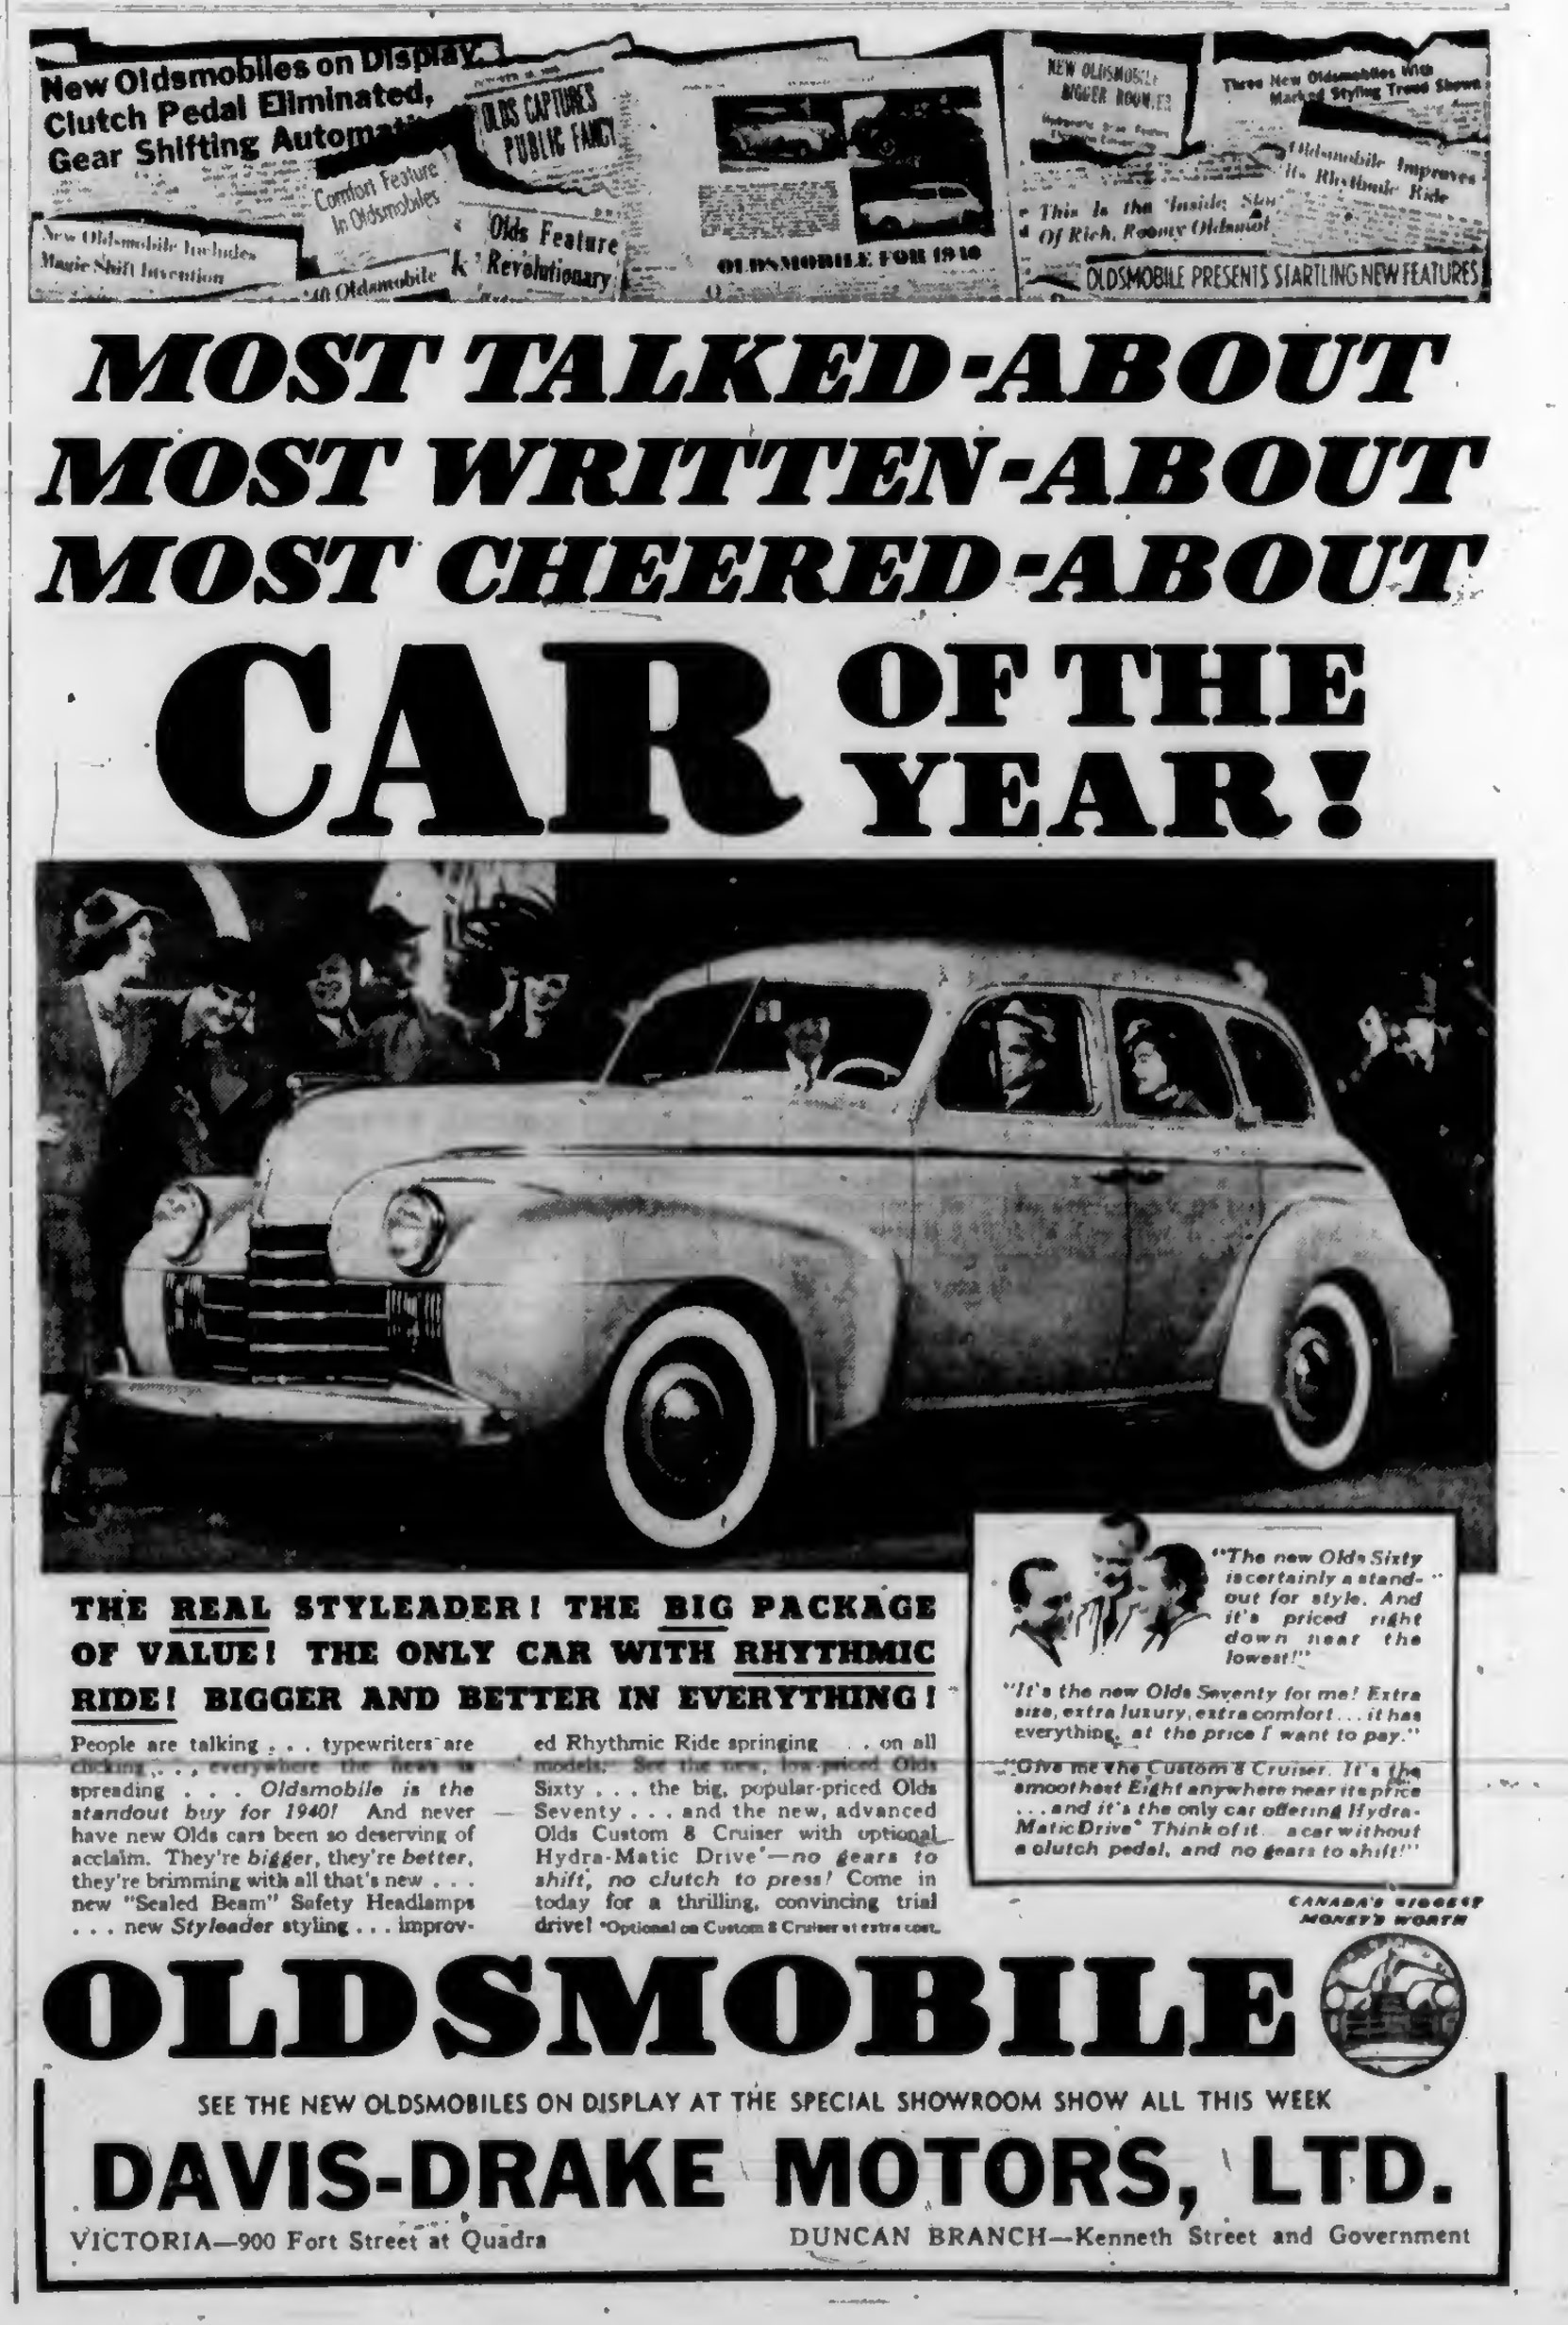 1940 advertisement for Oldsmobile, from davis=Drake Motors Ltd., Government Street at Kenneth Street (Duncan Sightseeing collection)